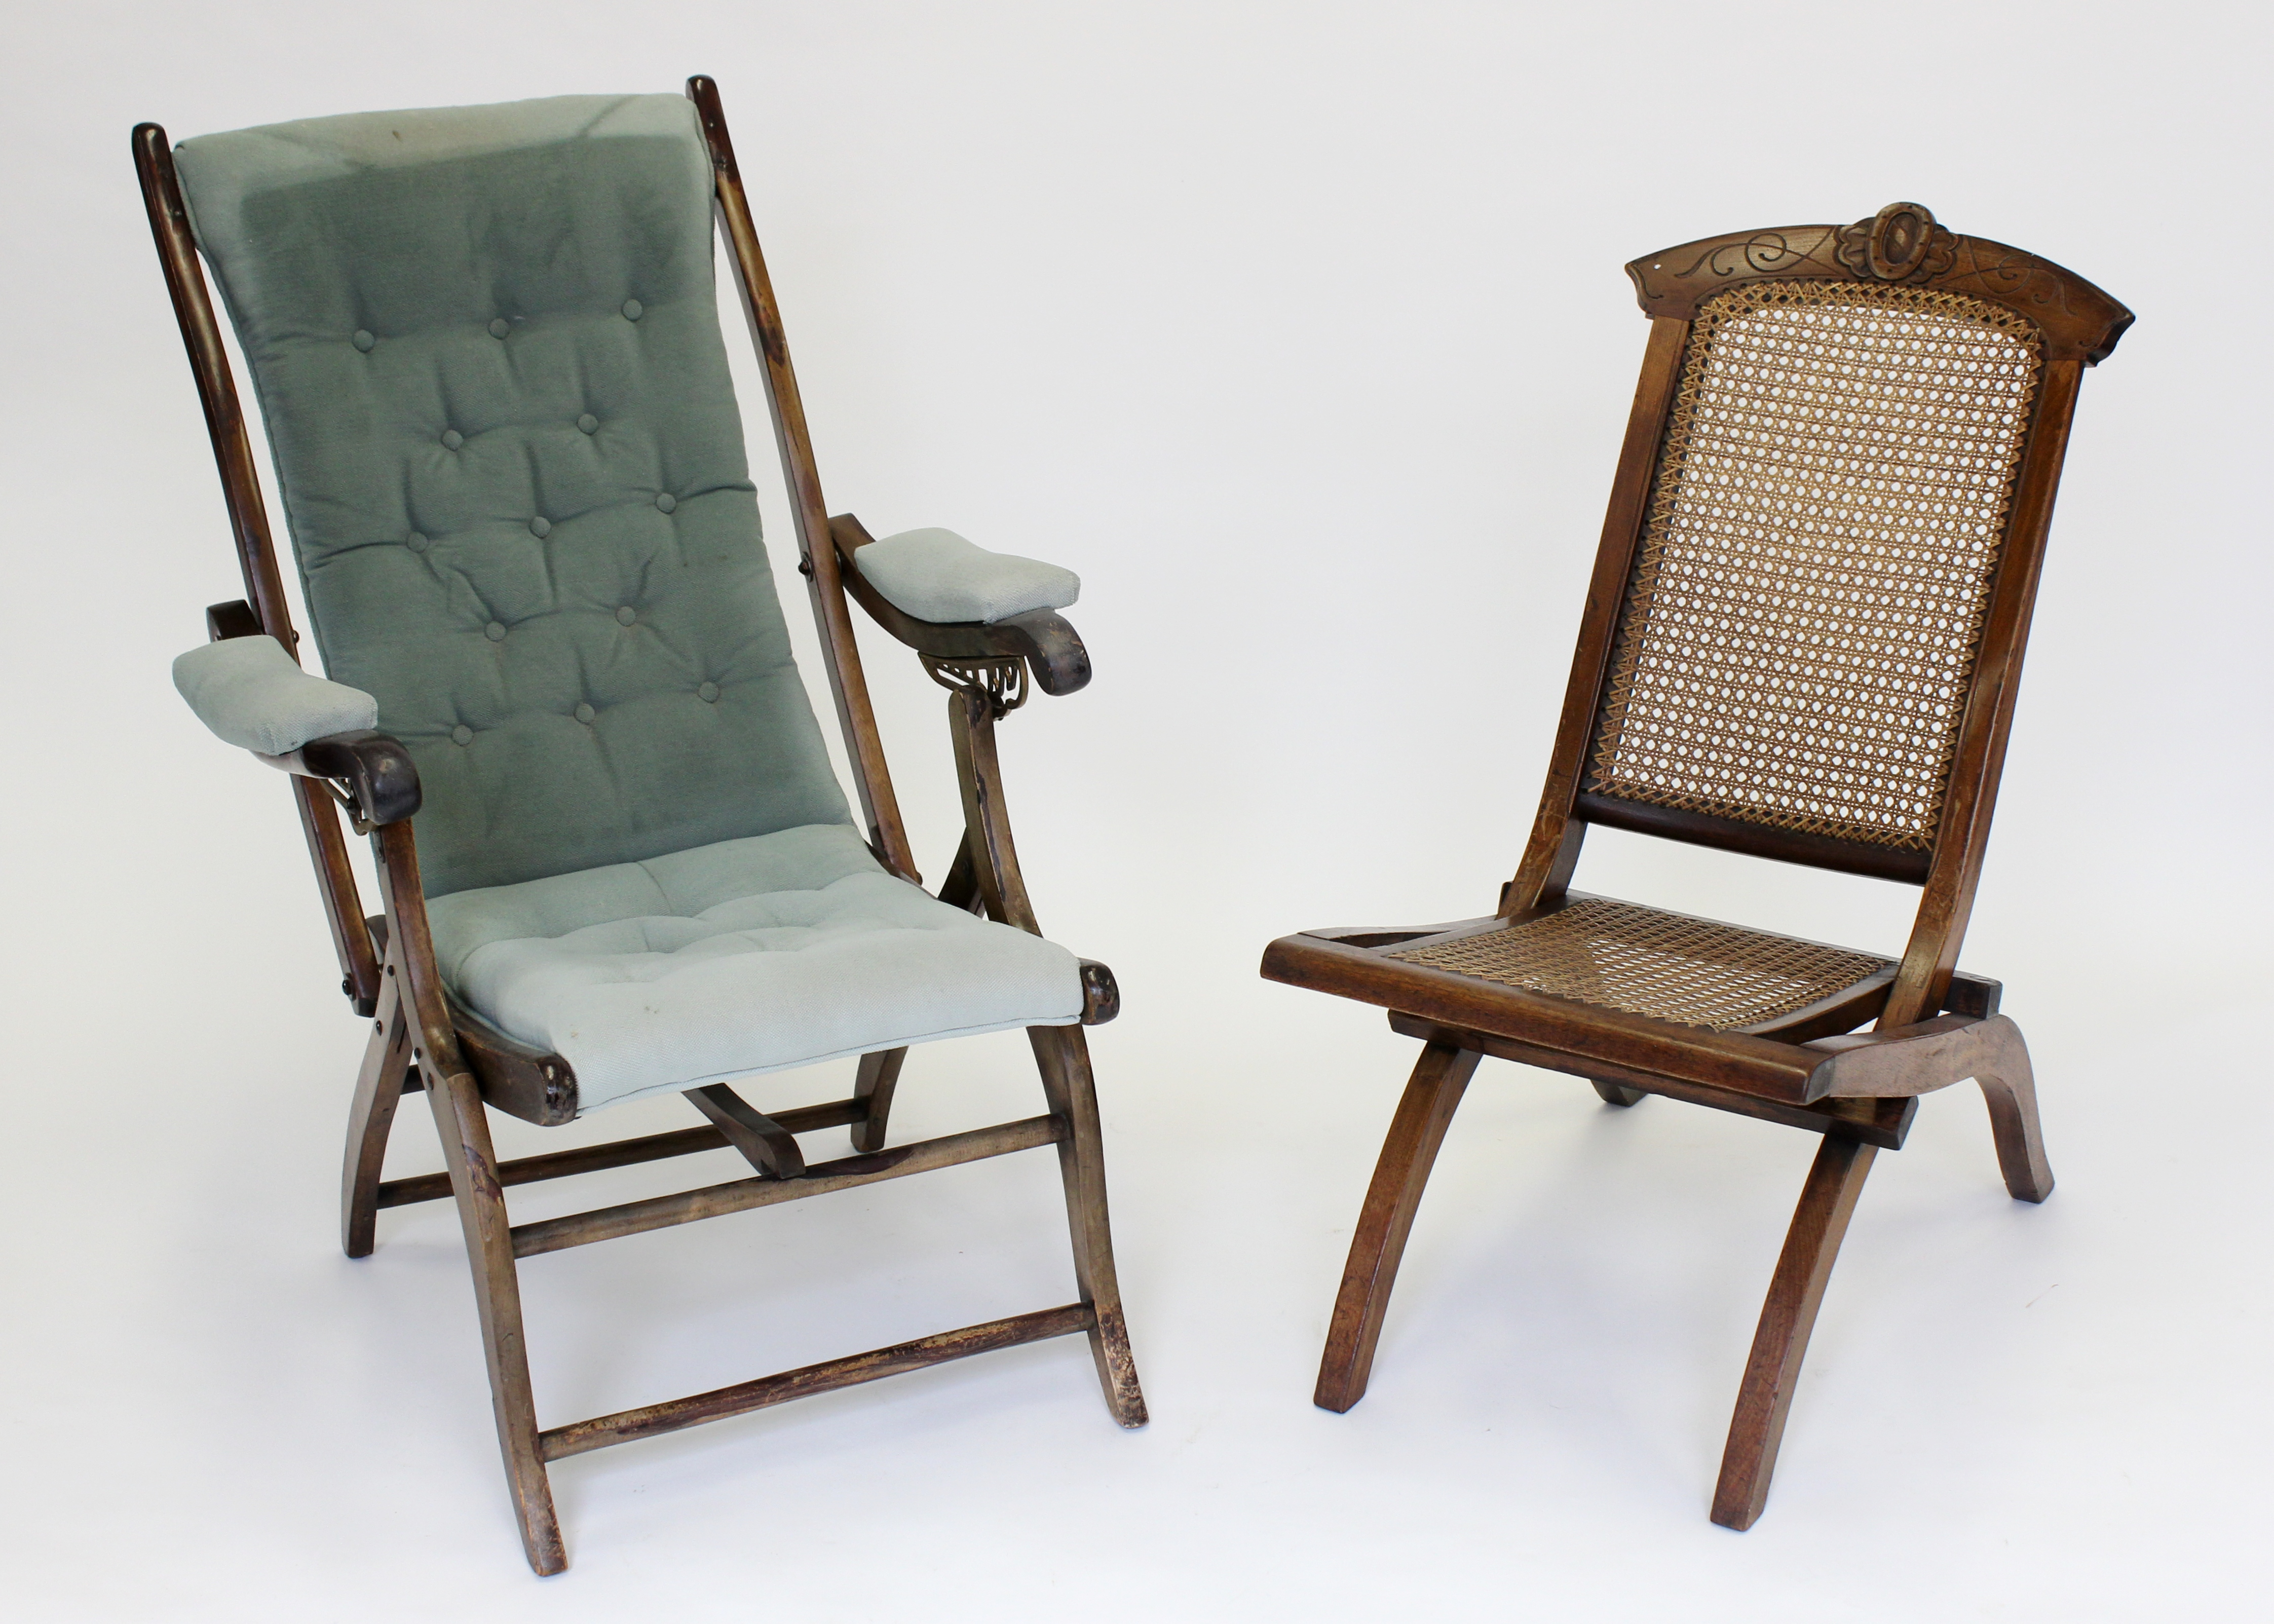 Lot 1055 - Two folding chairs to include a Victorian mahogany folding chair with bergere seat & Two folding chairs to include a Victorian mahogany folding chair ...